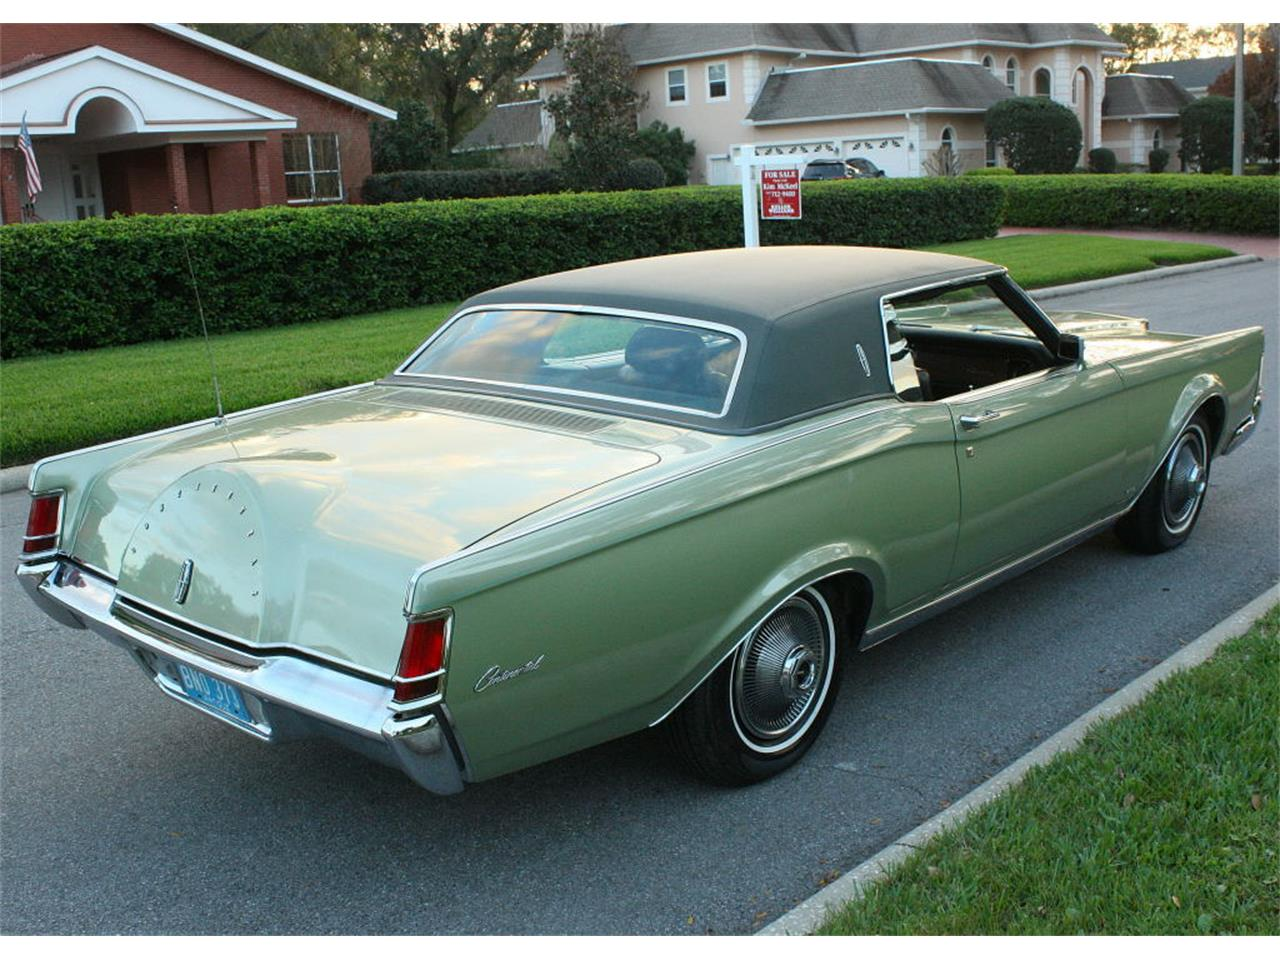 Large Picture of Classic '69 Continental Mark III - $24,500.00 Offered by MJC Classic Cars - OPDW